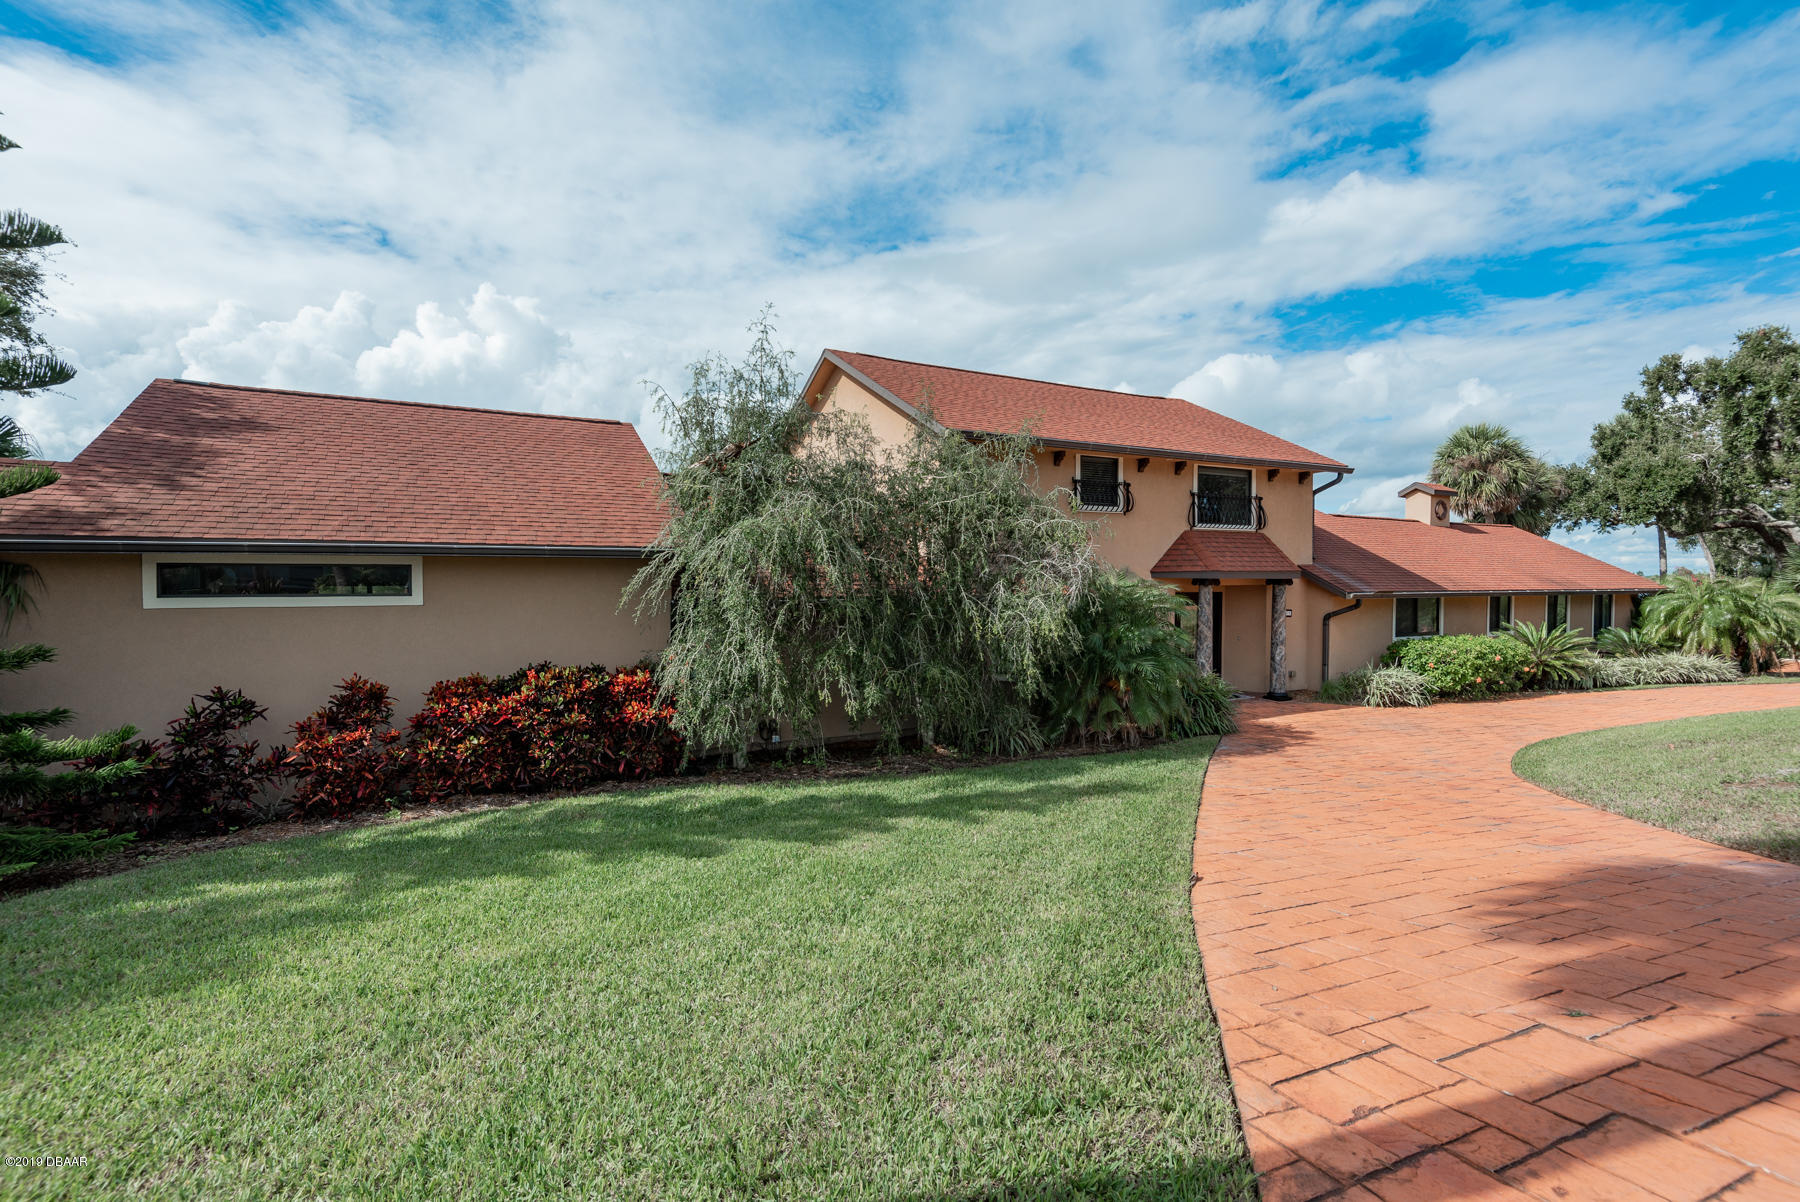 Photo of 2412 John Anderson Drive, Ormond Beach, FL 32176